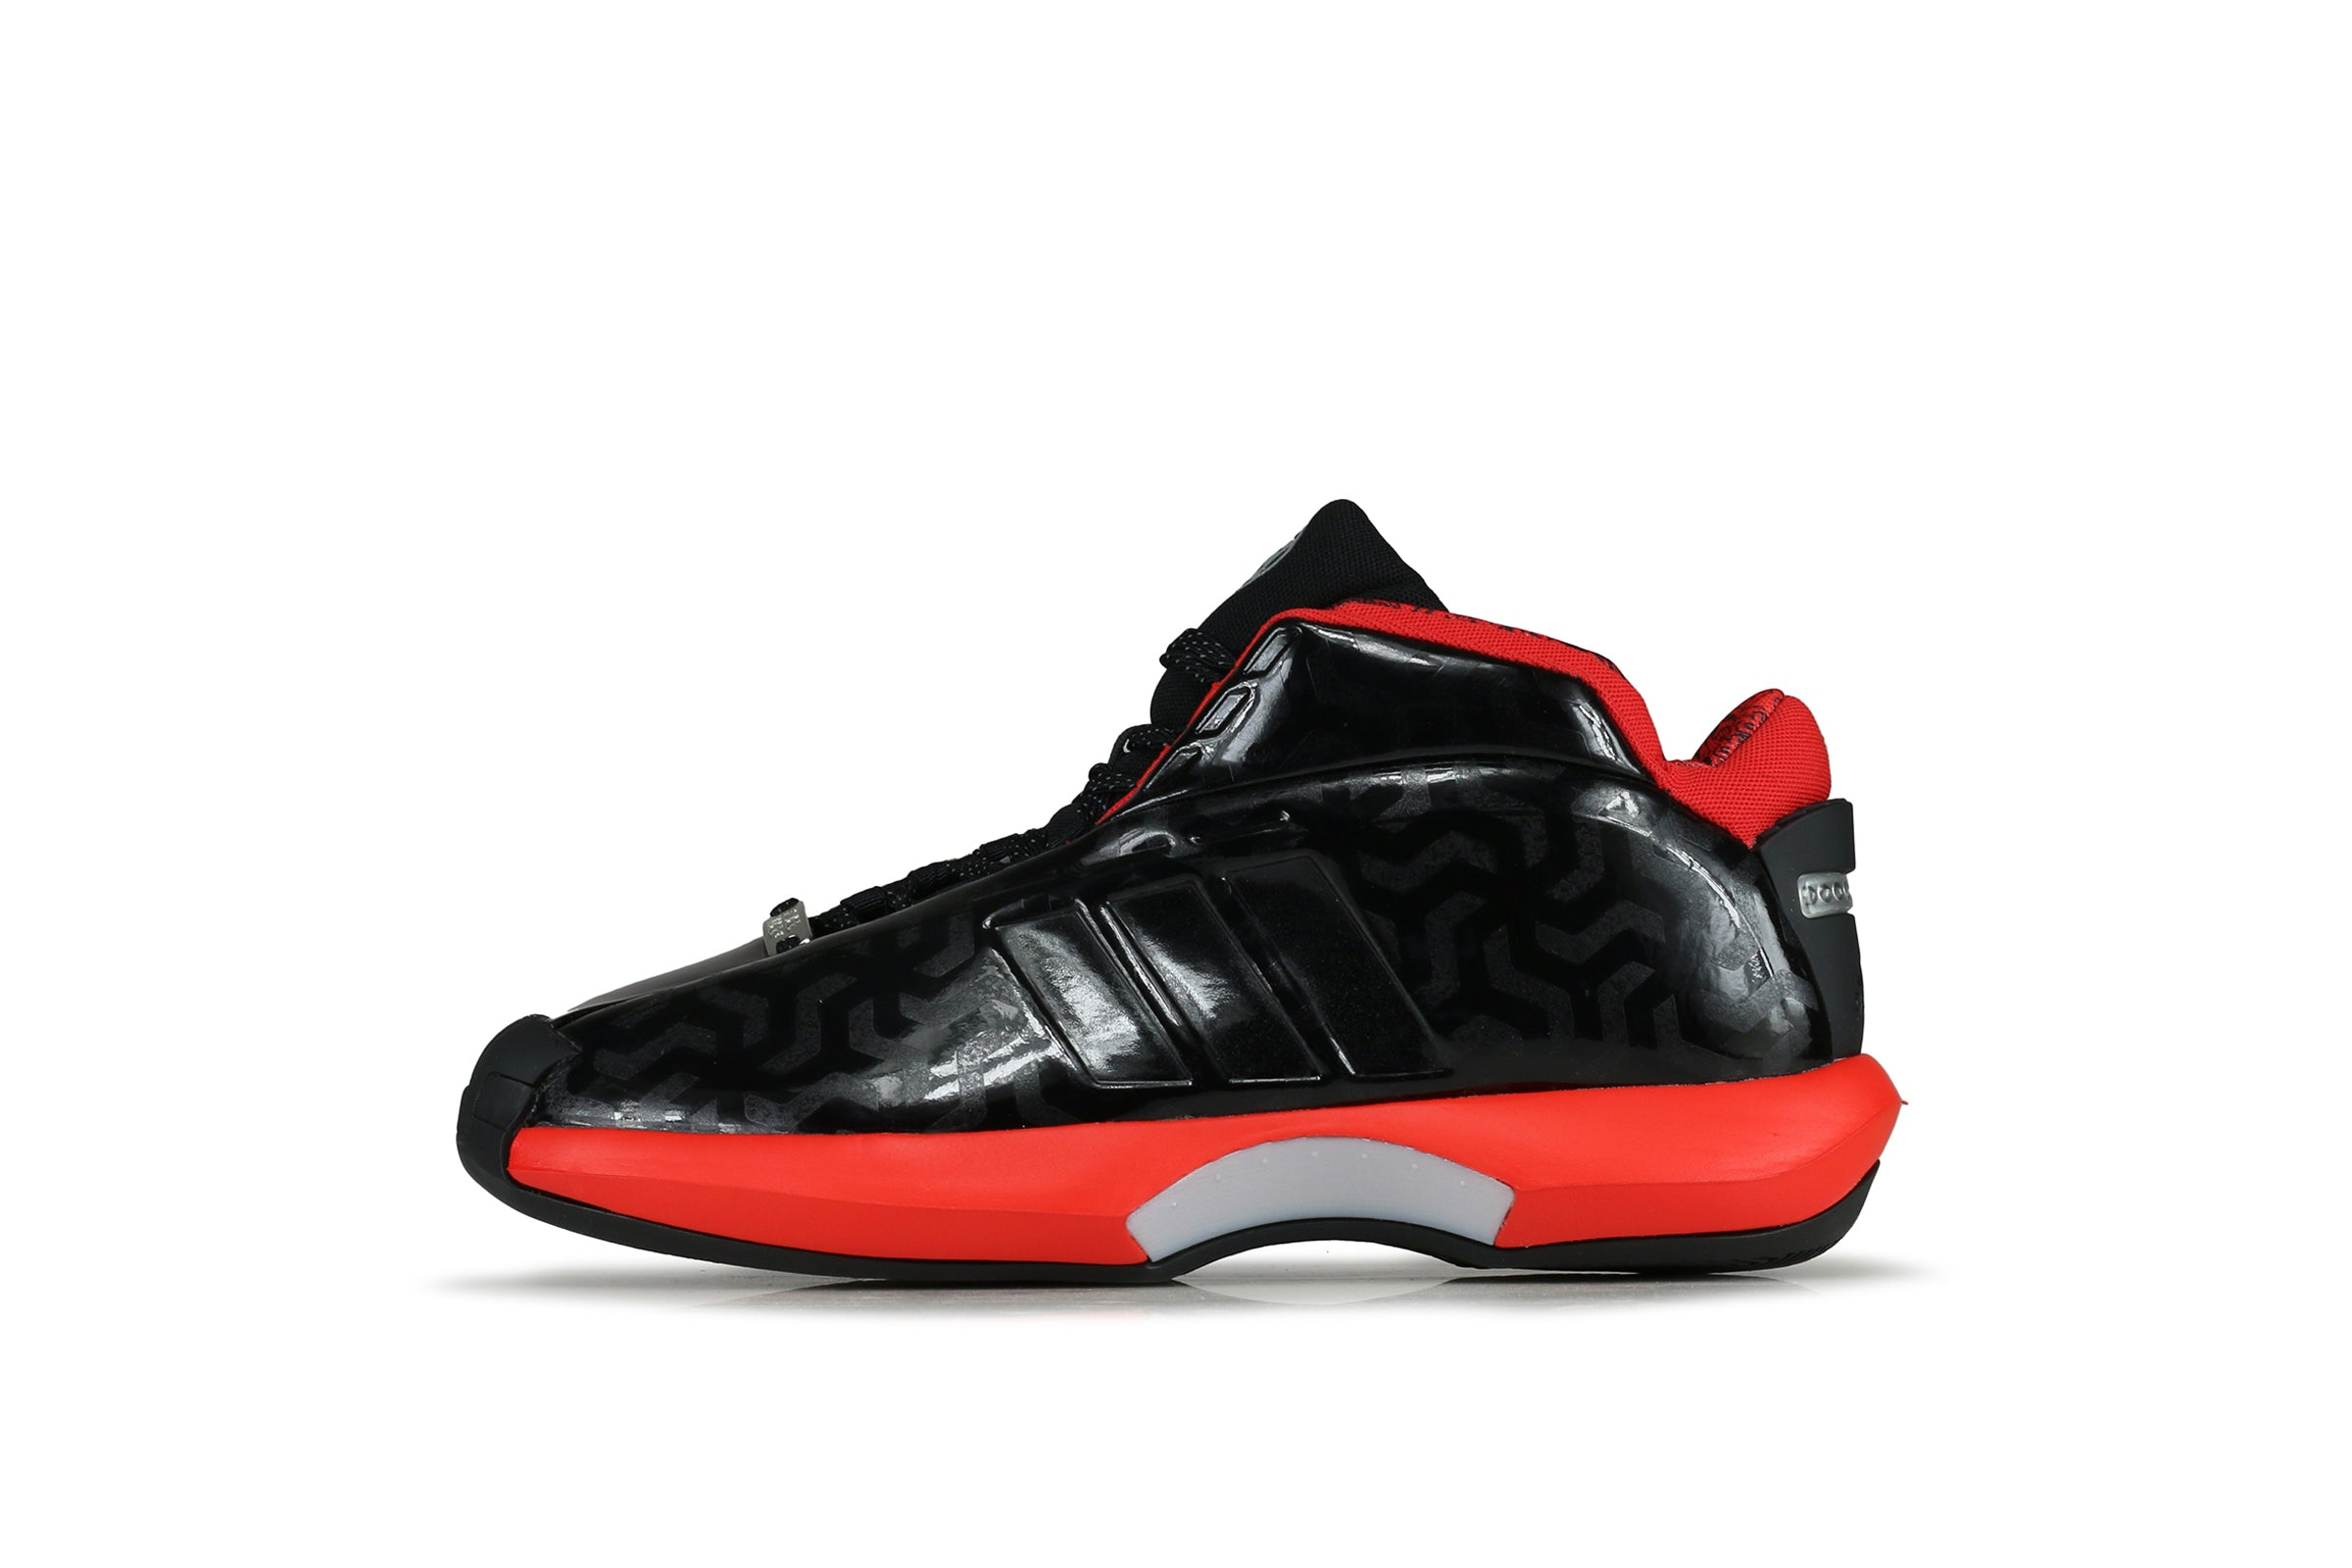 Adidas Crazy 1 x Star Wars